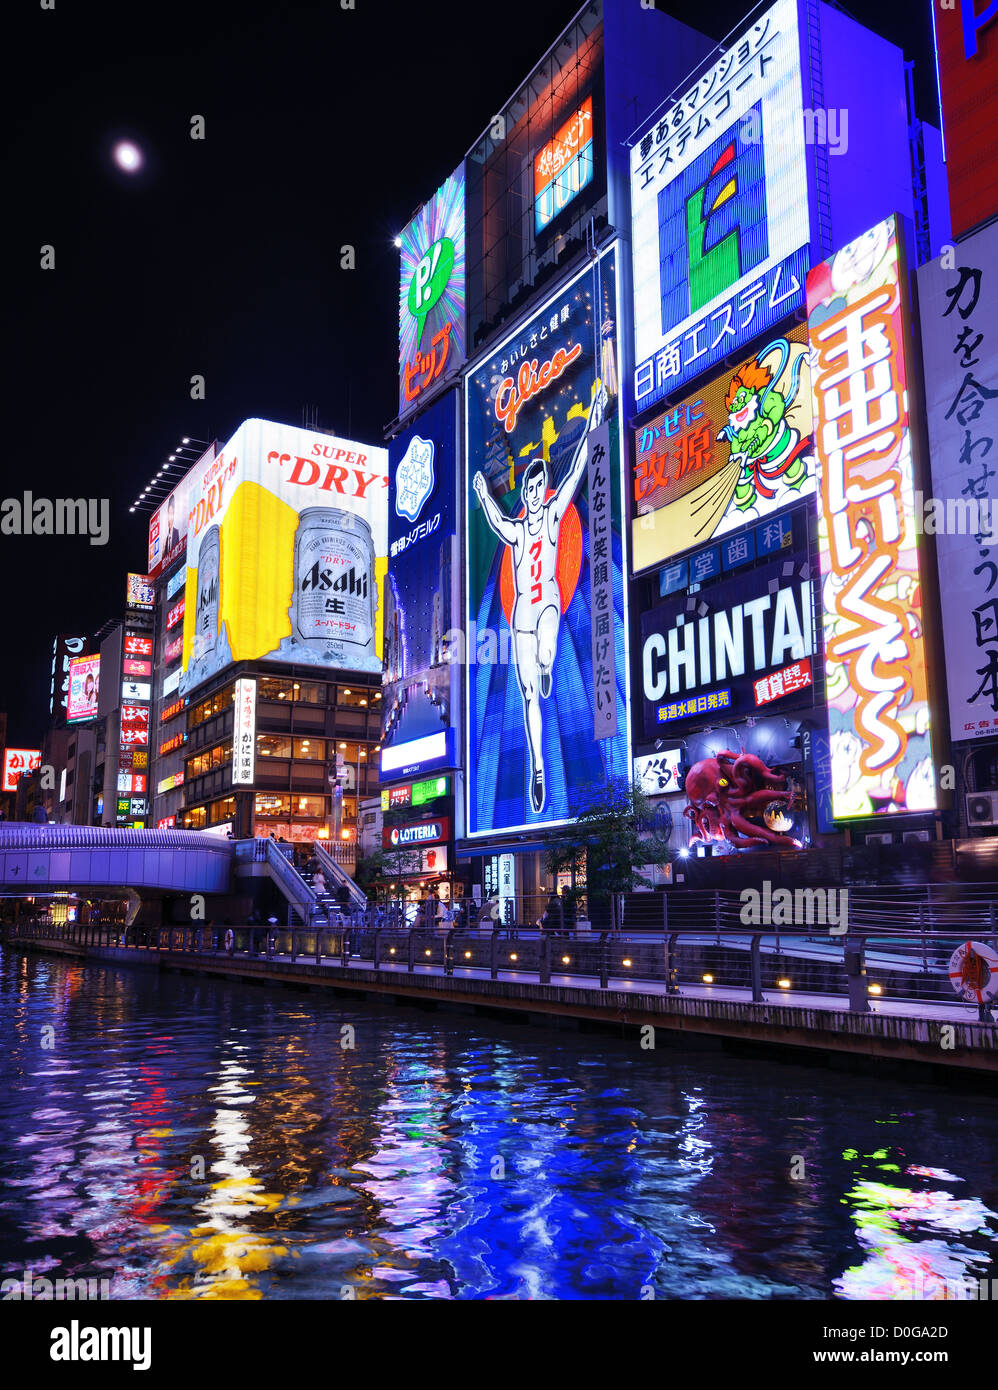 Dotonbori District of Osaka, Japan. - Stock Image